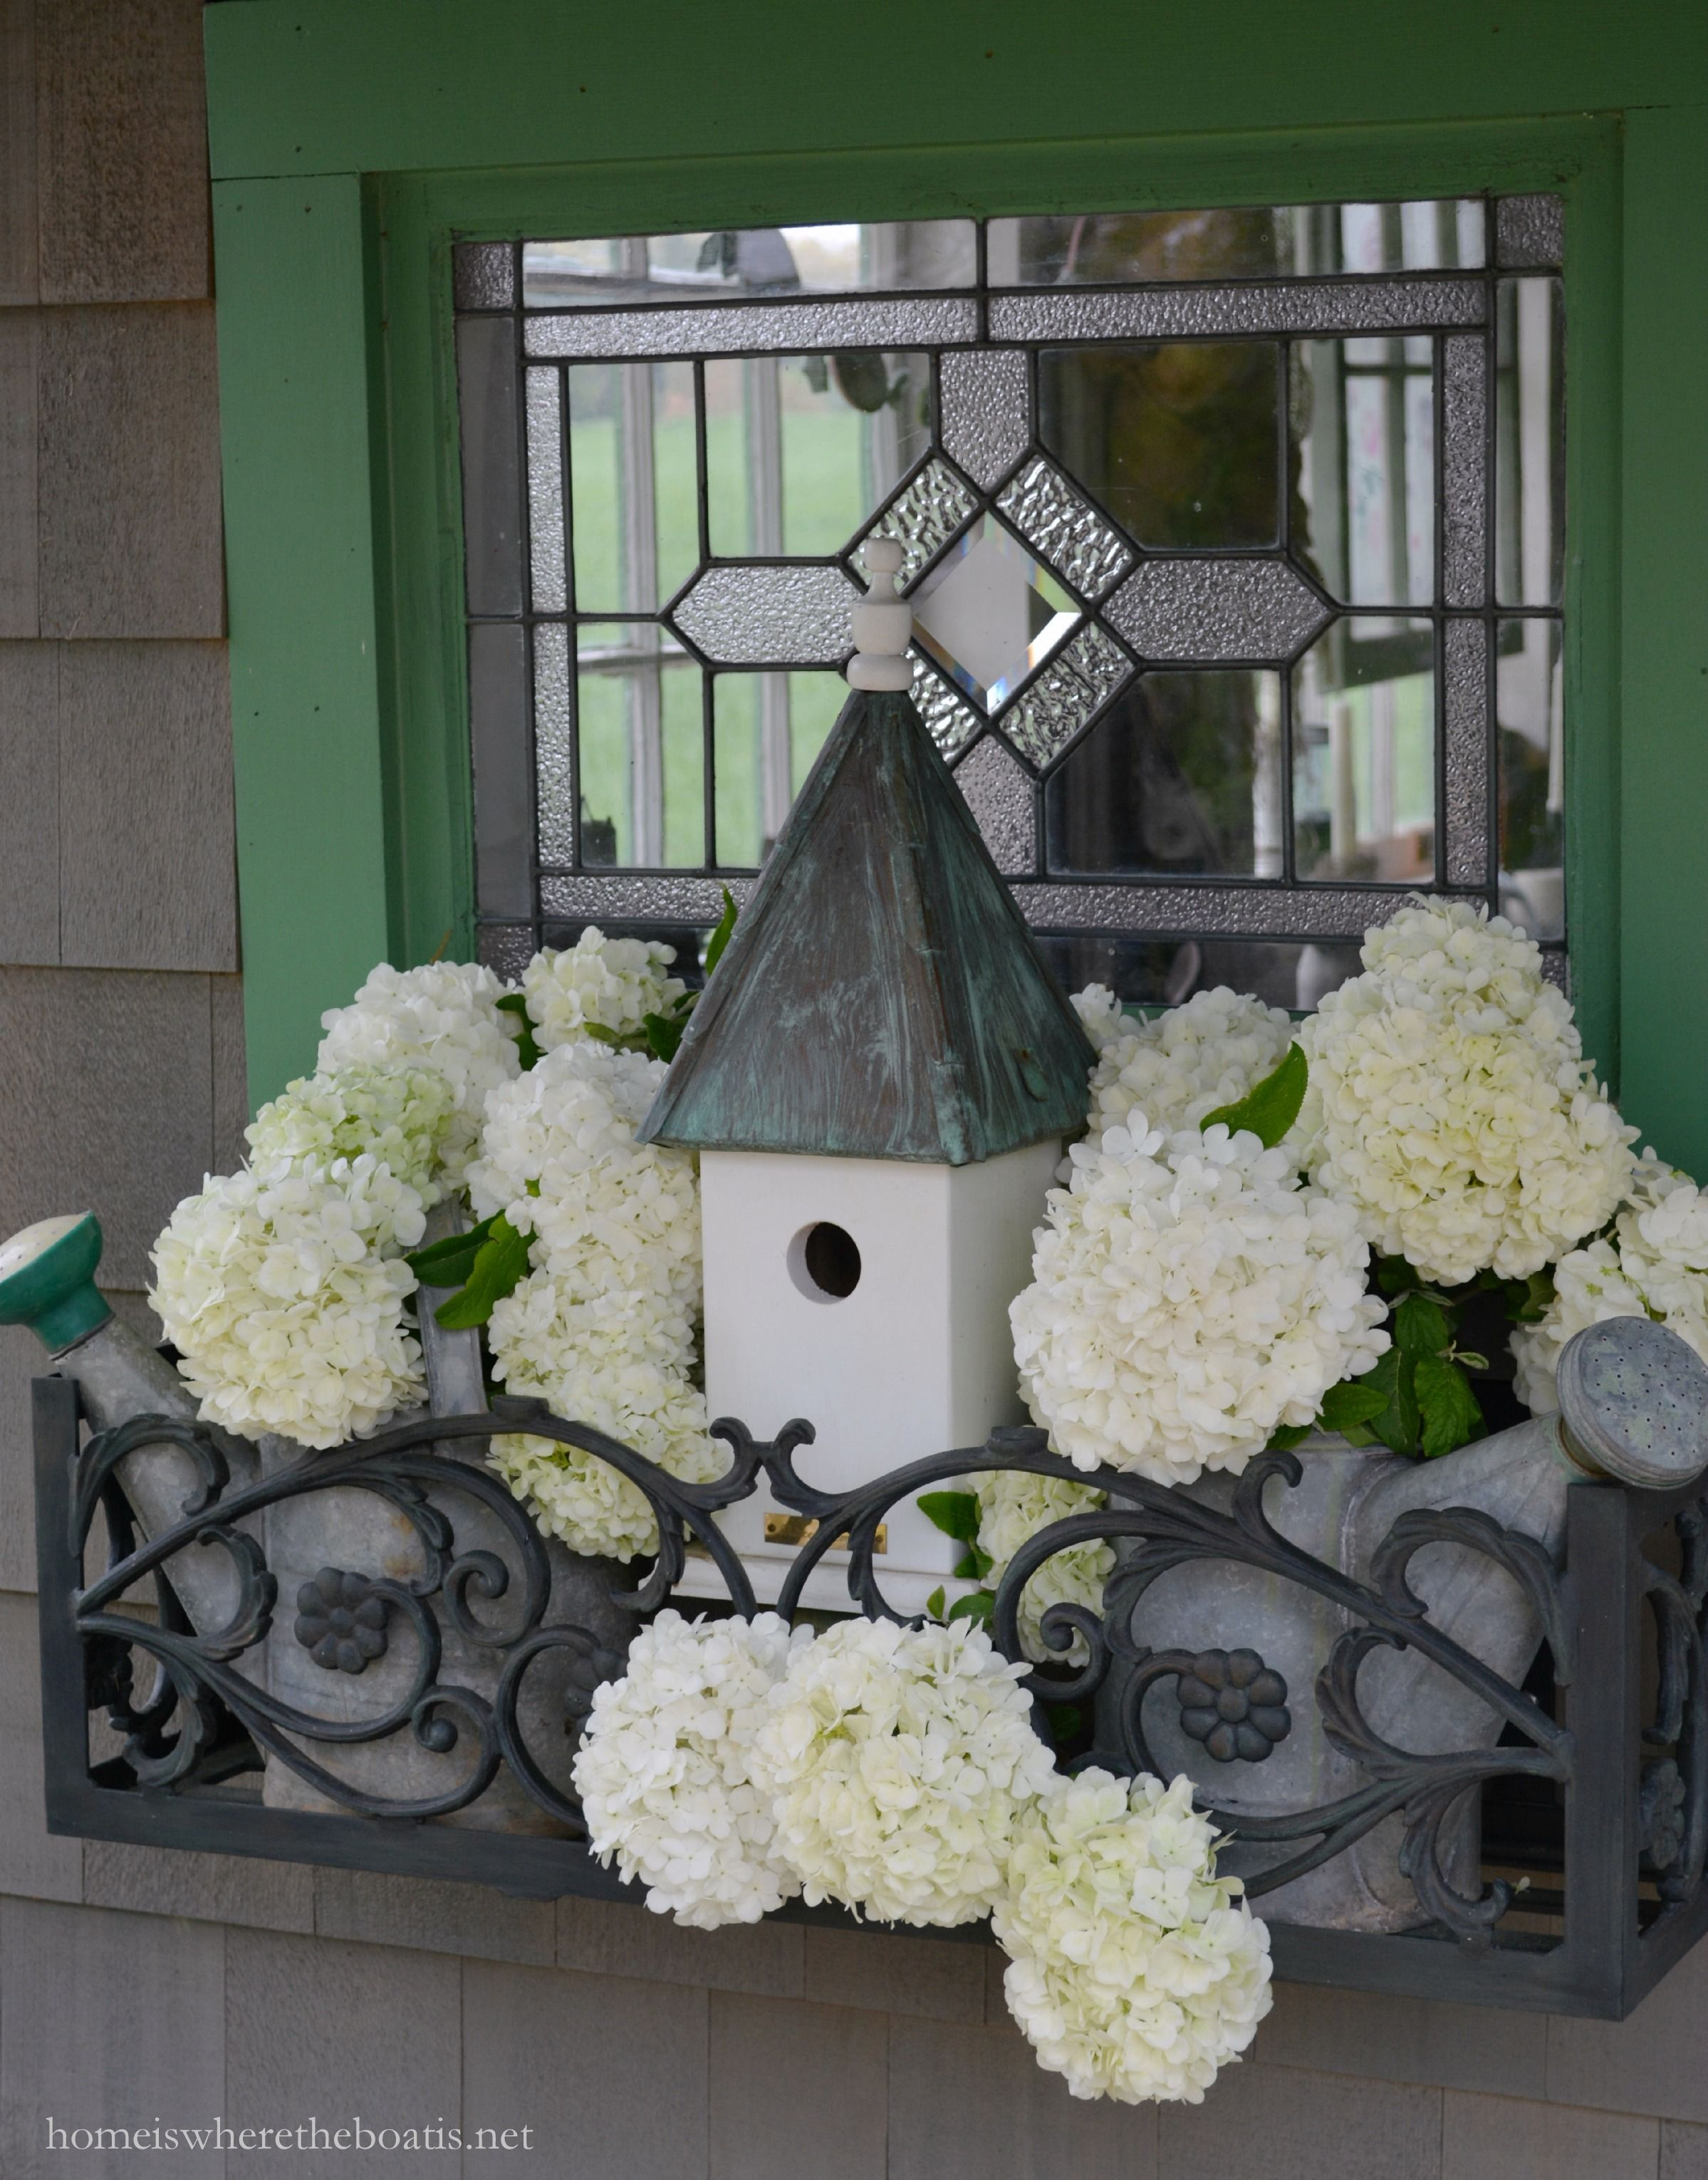 Potting Shed window box with watering cans, bird house and snowball viburnum | homeiswheretheboatis.net #spring #pottingshed #garden